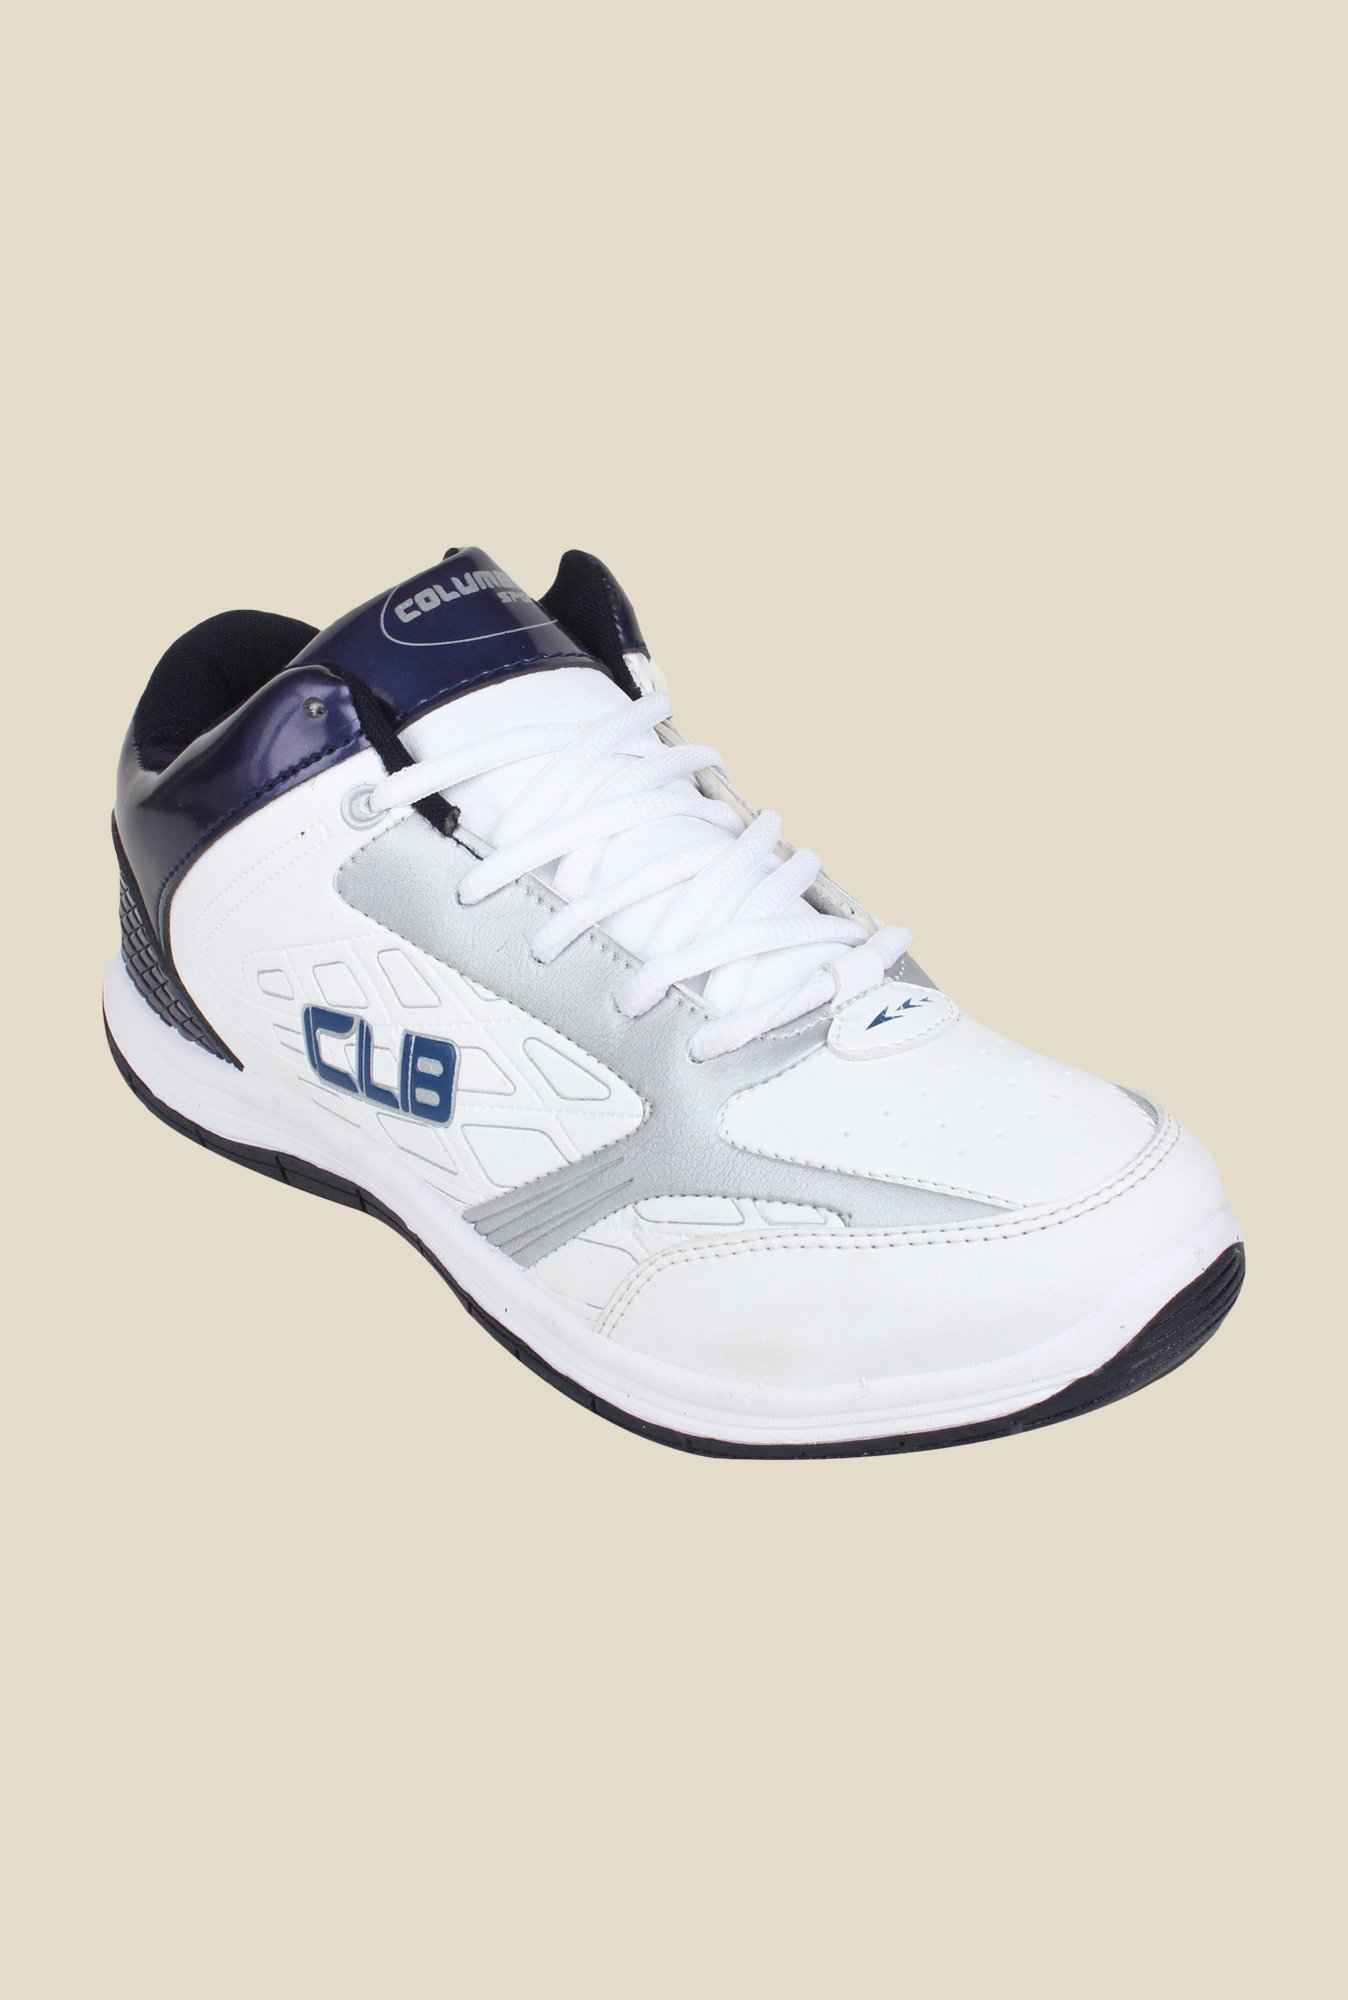 Columbus FM-13 White & Navy Running Shoes